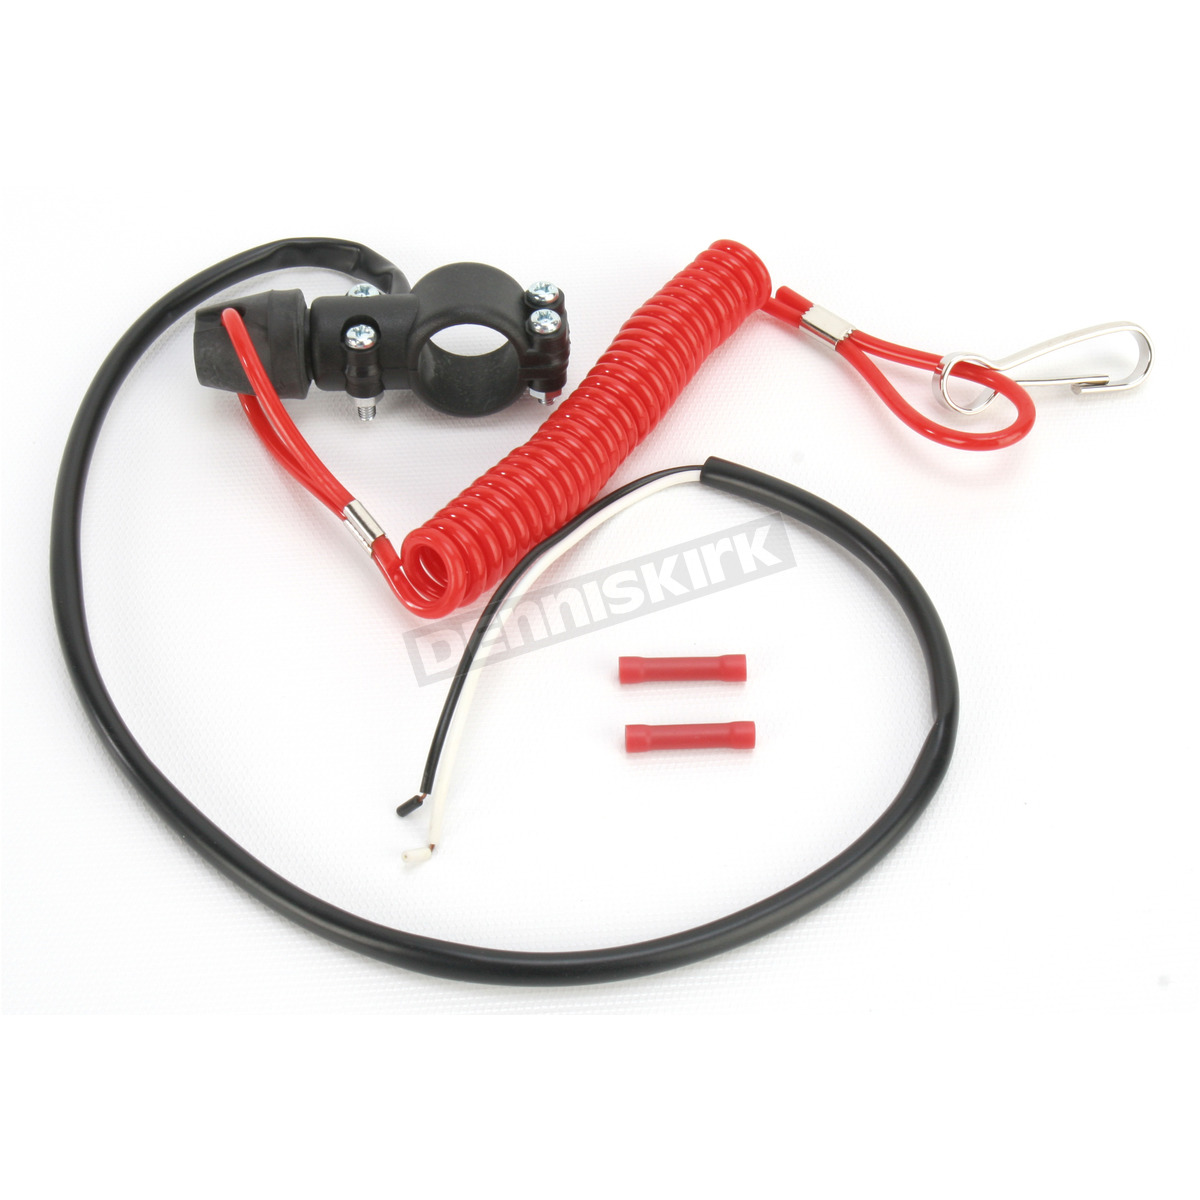 Maier Universal Tether Kill Switch 96946 Dirt Bike Motorcycle Any Diagramsdirtcircuitwiringjpg